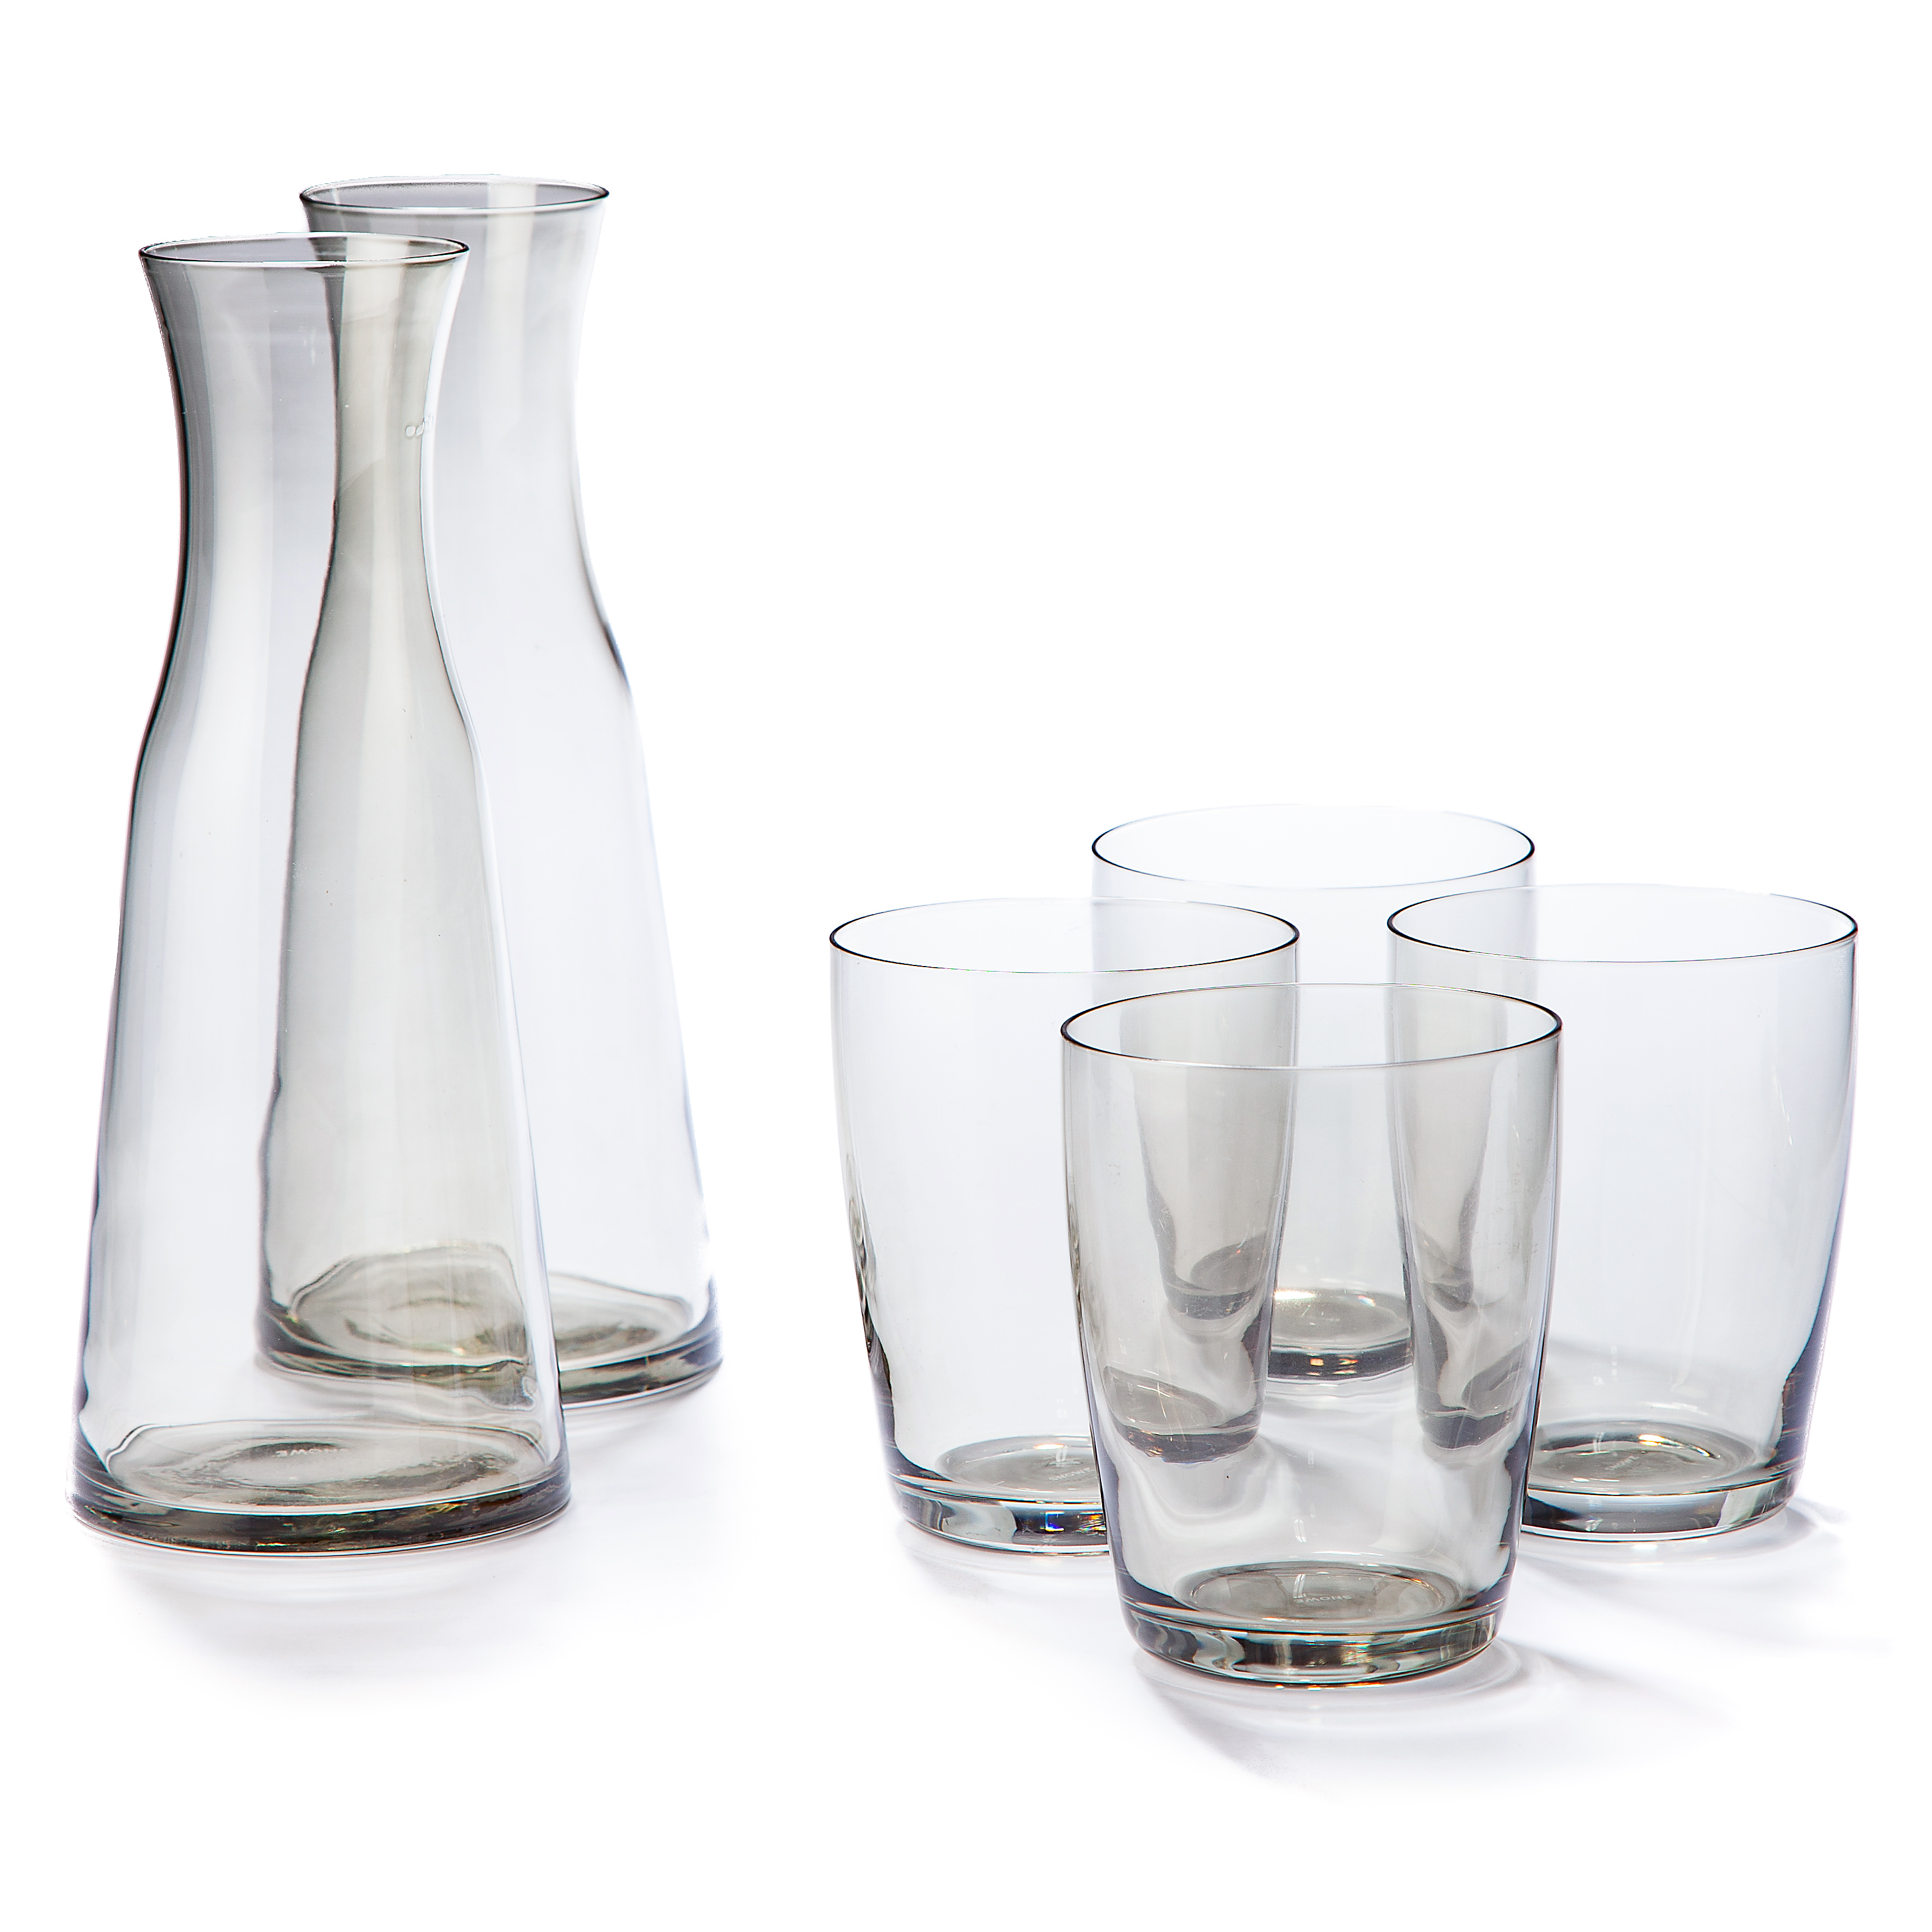 A Carafe That Is A Blind Glass snowe smoke grey glass set + carafes  huckberry